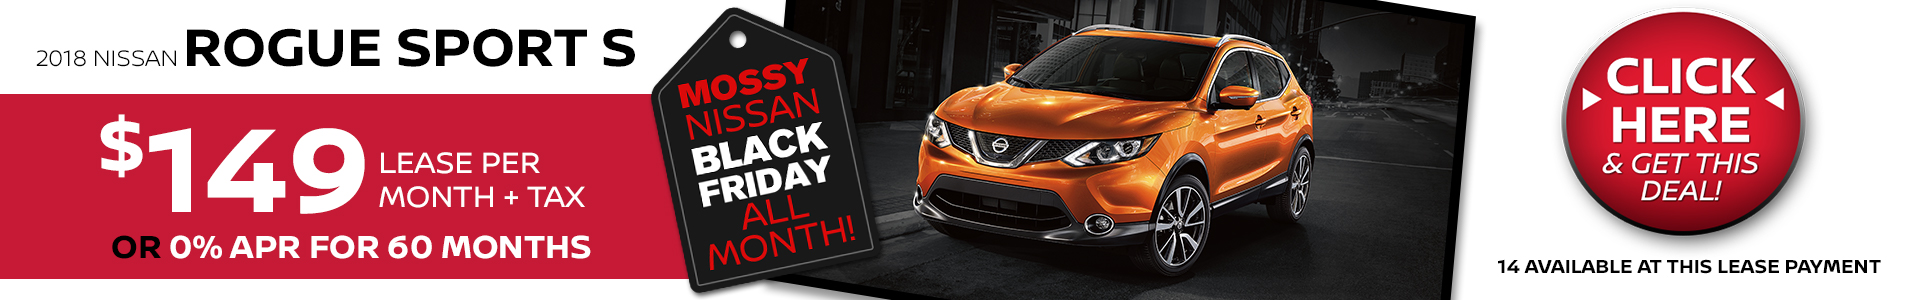 Mossy Nissan - Rogue Sport $149 Lease